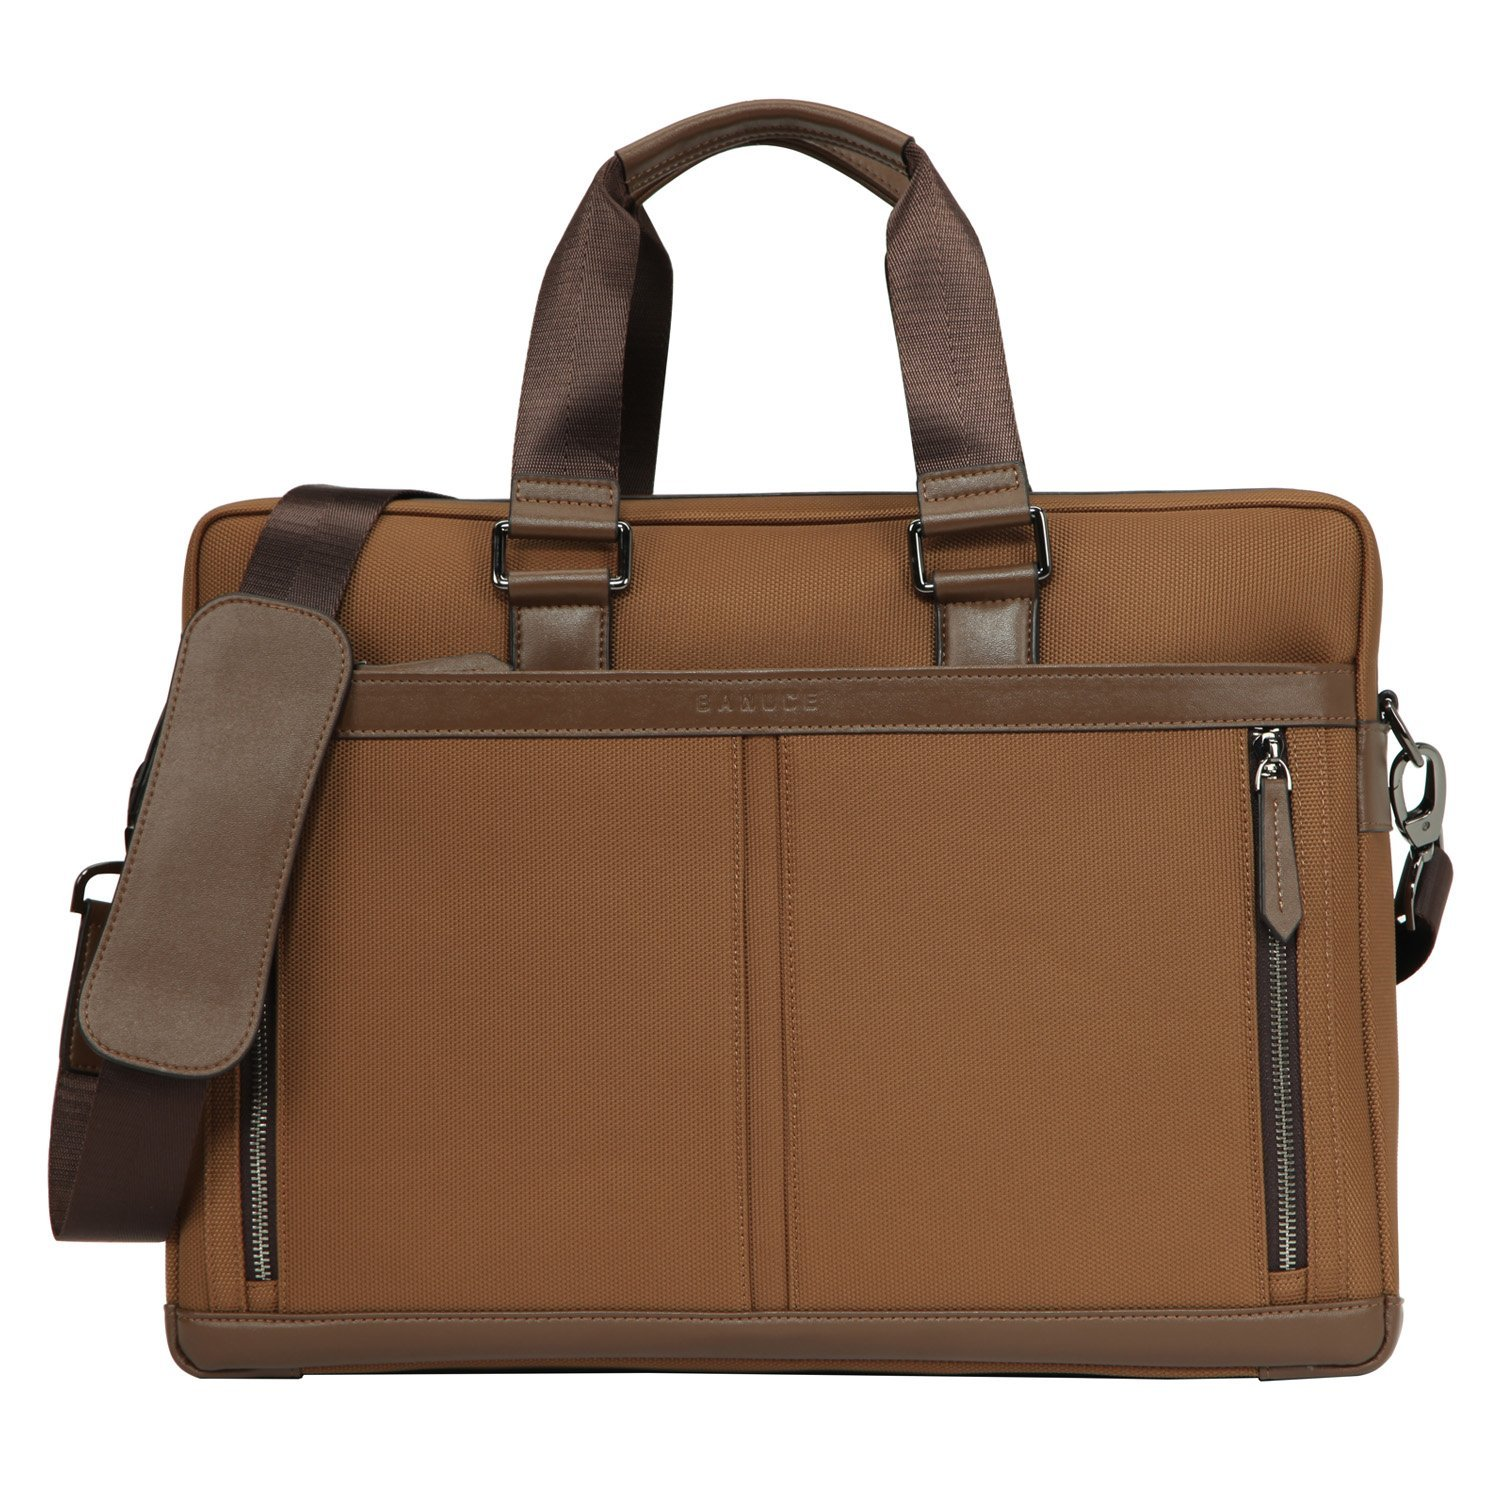 Banuce Mens Waterproof PU Leather Briefcase Tote Bag Attach Case 14 Laptop